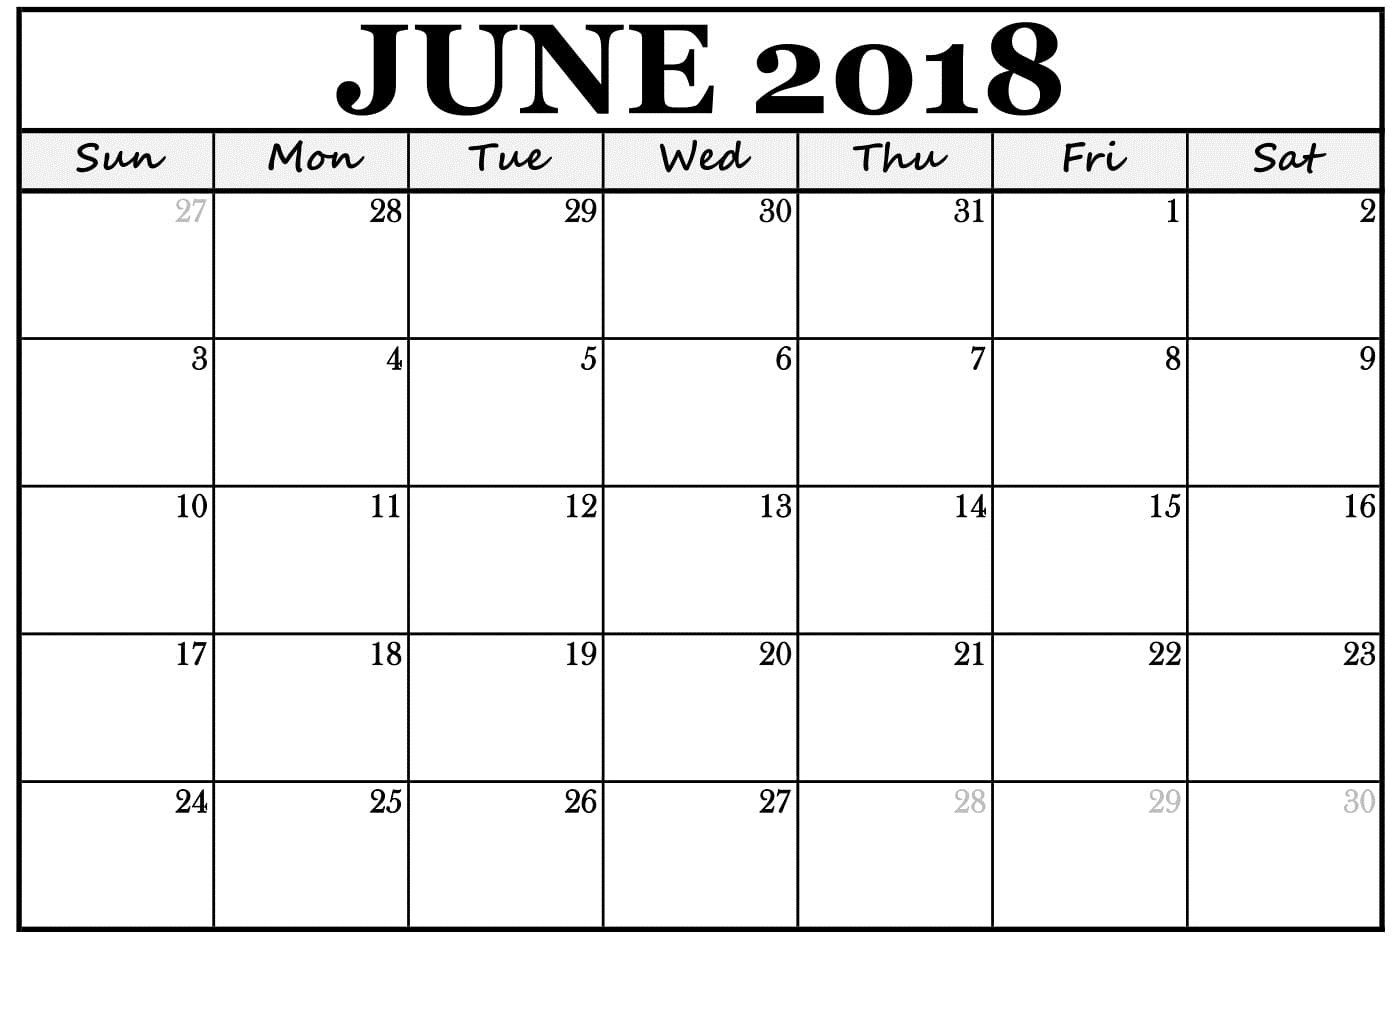 June 2018 Calendar Template | Calendario, Imprimir Sobres